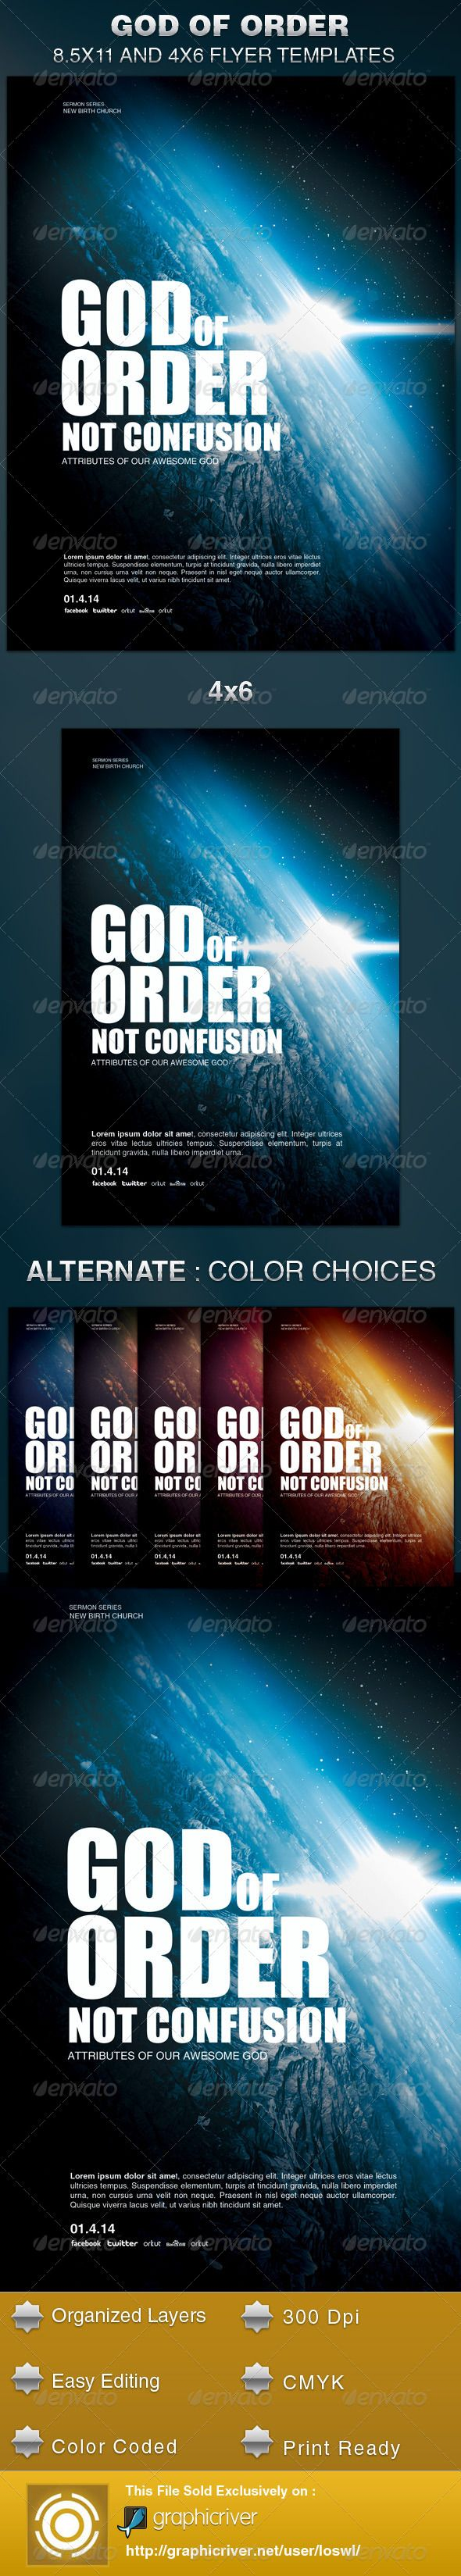 best images about church flyers marketing god of order church flyer template